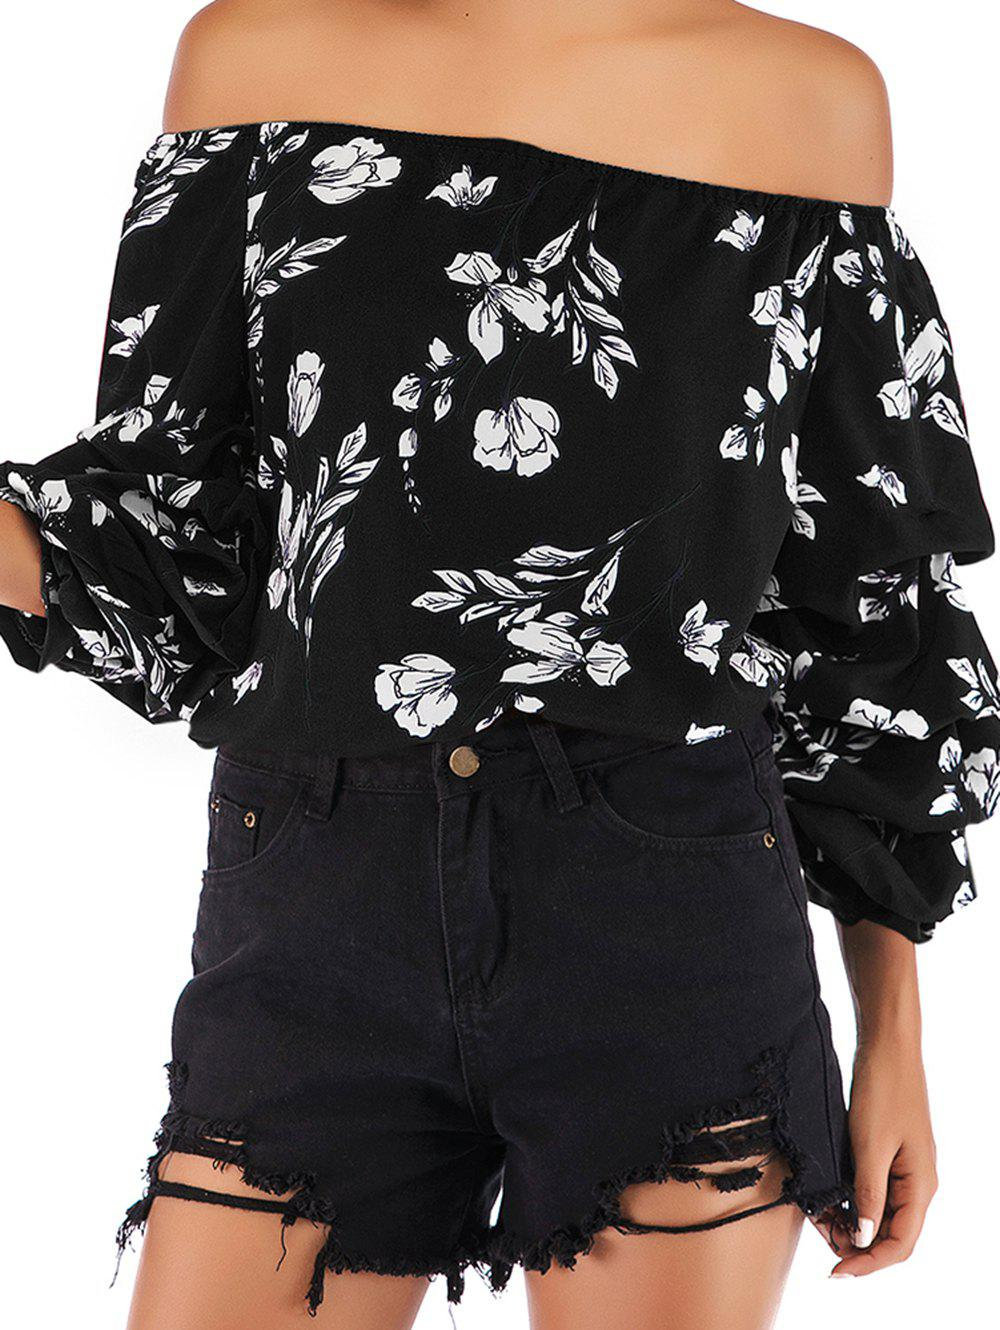 Sale Women Casual Floral Print Long Sleeve Chiffon Shirt Blouse Tops